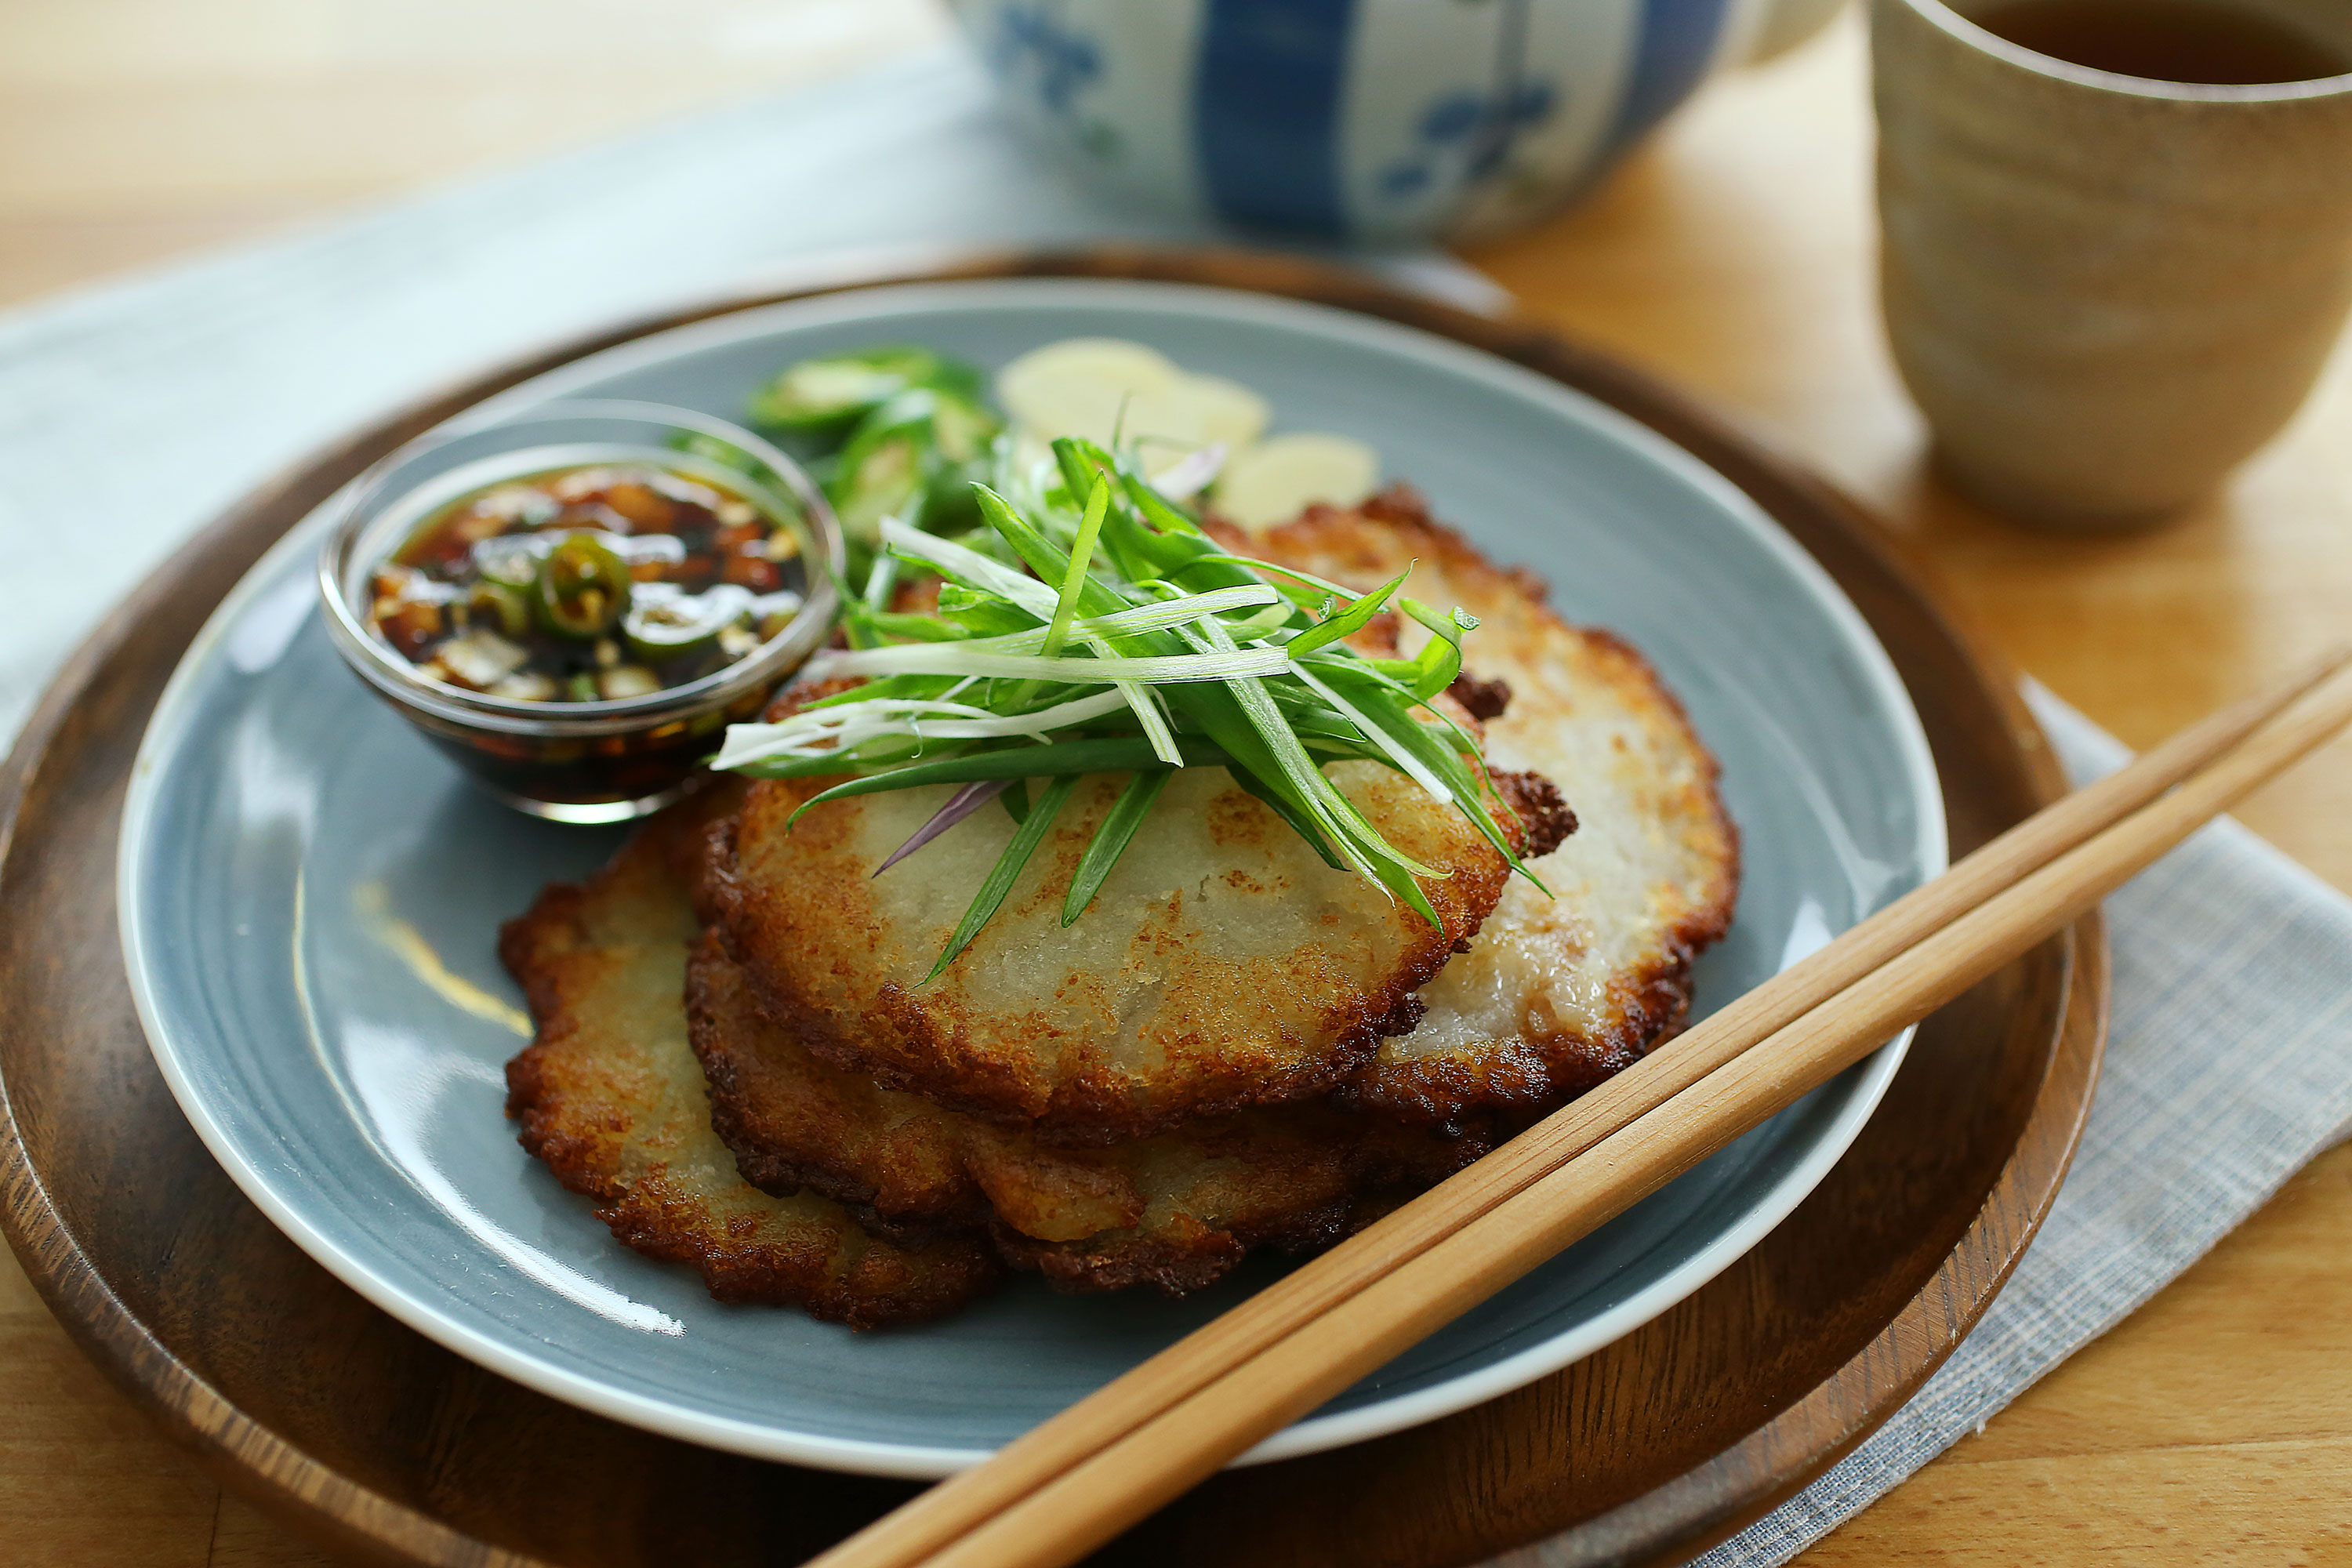 Korean Potato Pancake - 韩式马铃薯煎饼